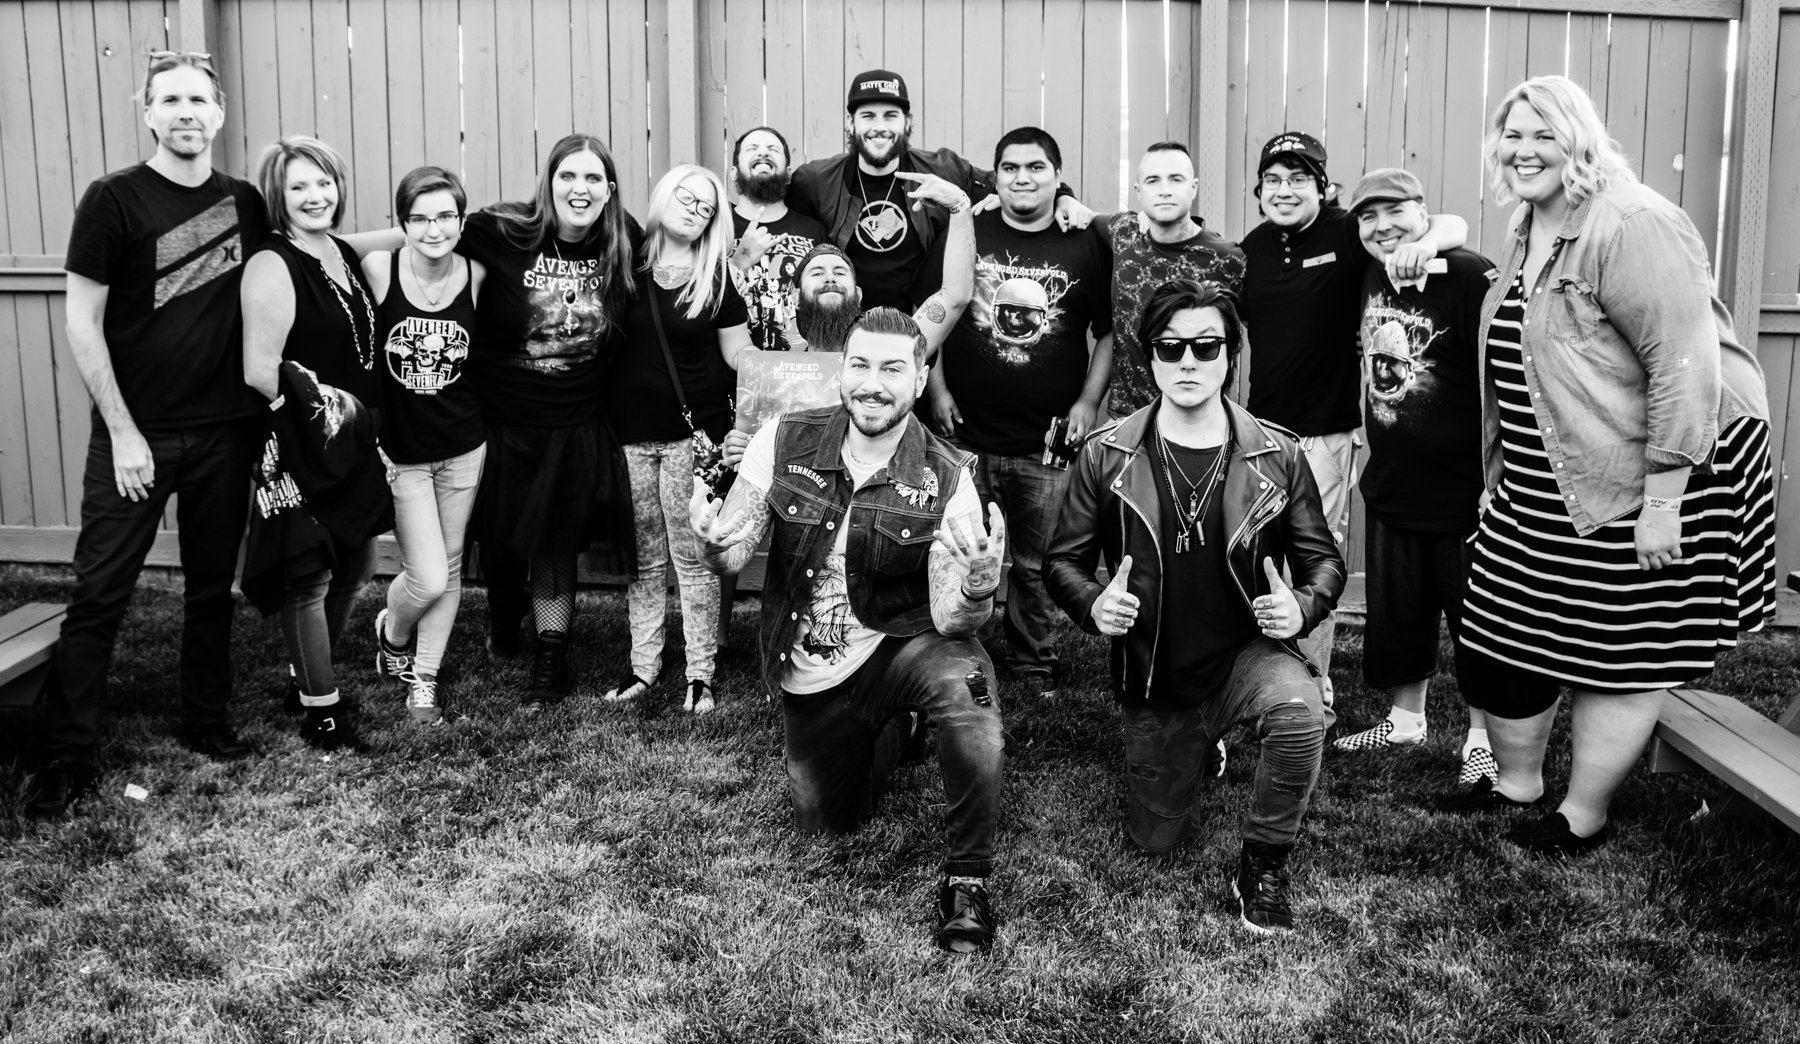 #DeathbatNation Meet and Greet - Salt Lake City #avengedsevenfold #thestageworldtour ��:@rafacore https://t.co/ZcCFVIPGDA